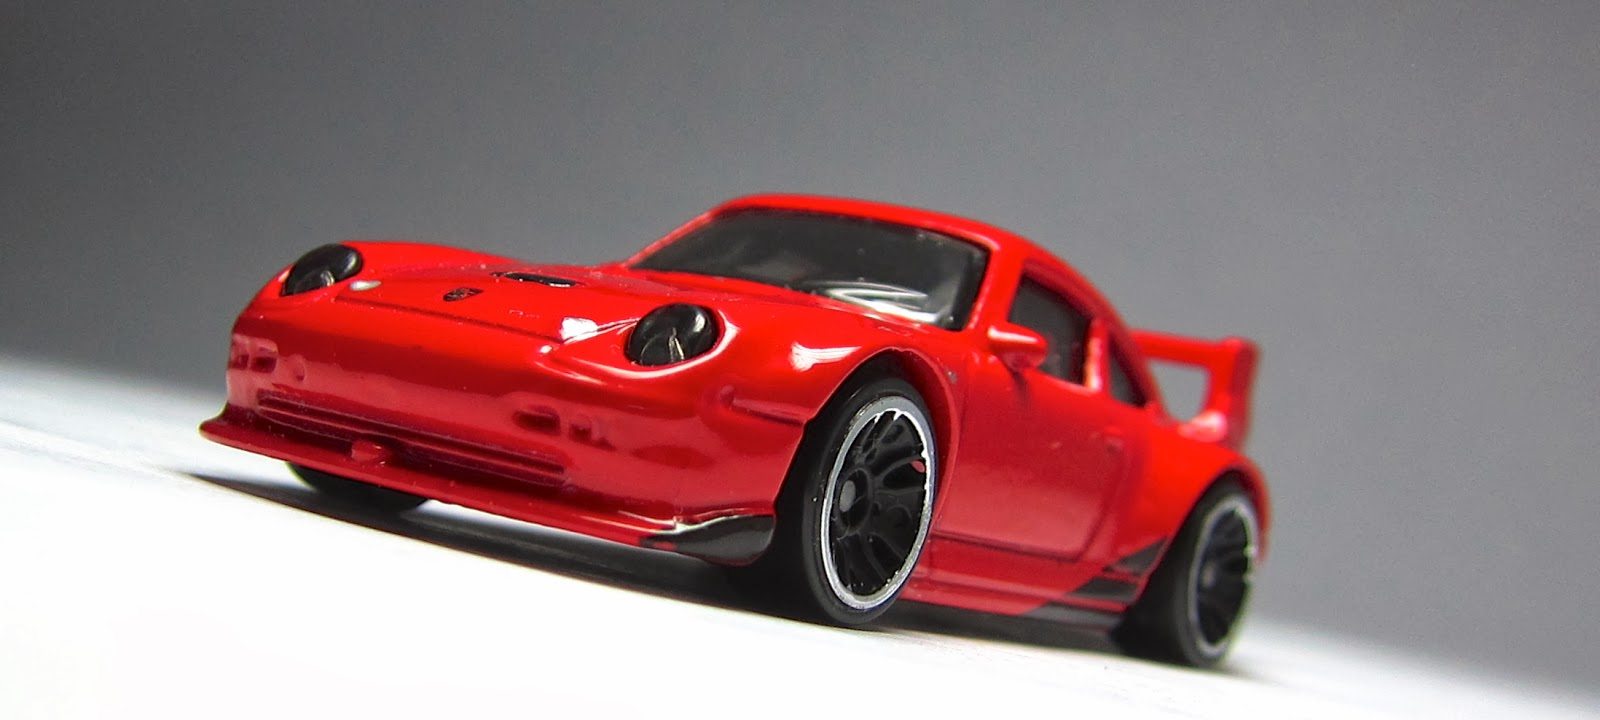 porsche 993 gt2 hot wheels wiki. Black Bedroom Furniture Sets. Home Design Ideas